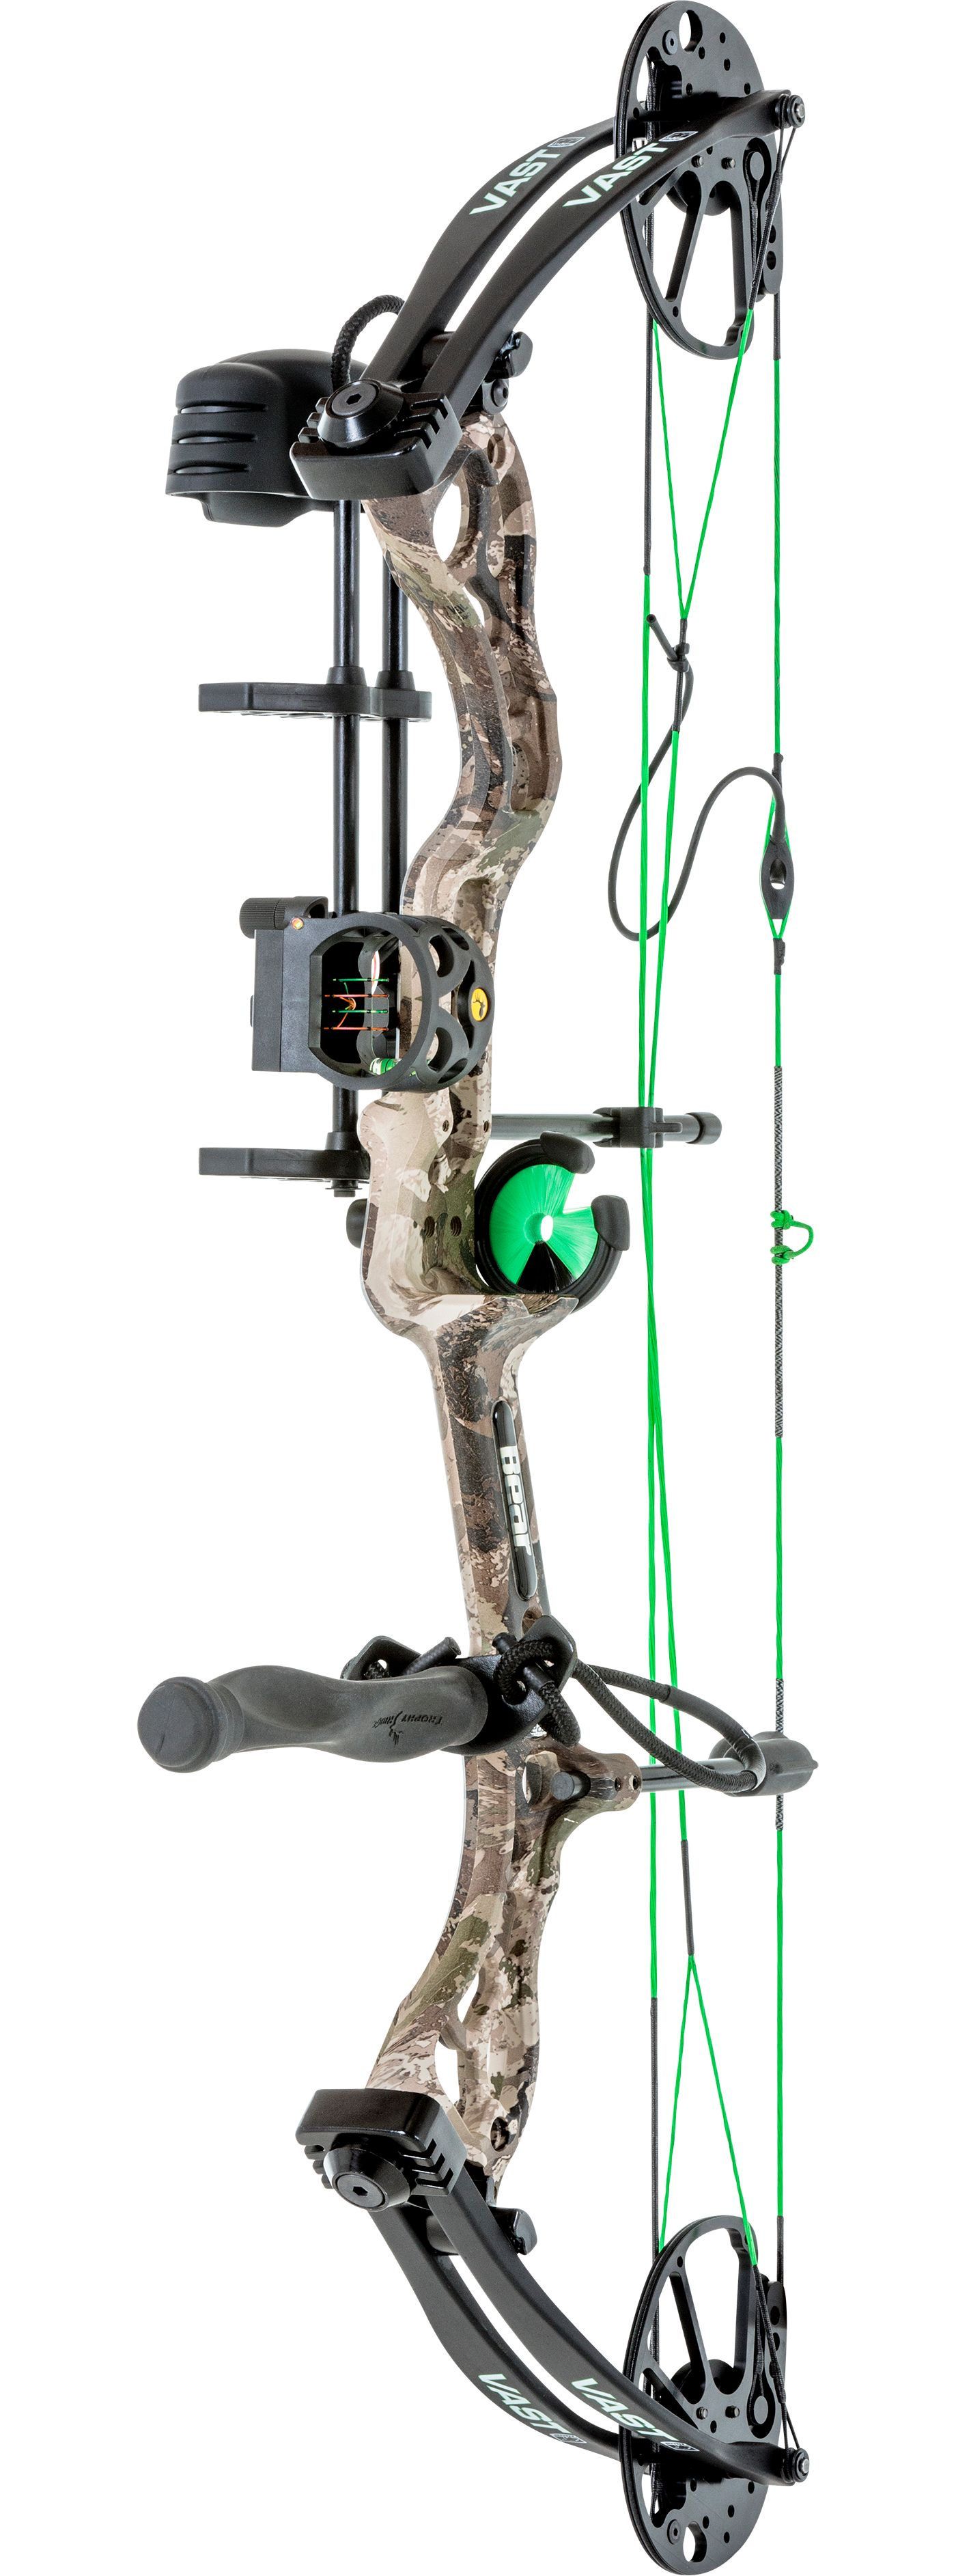 Bear Archery Vast RTH Compound Bow Package